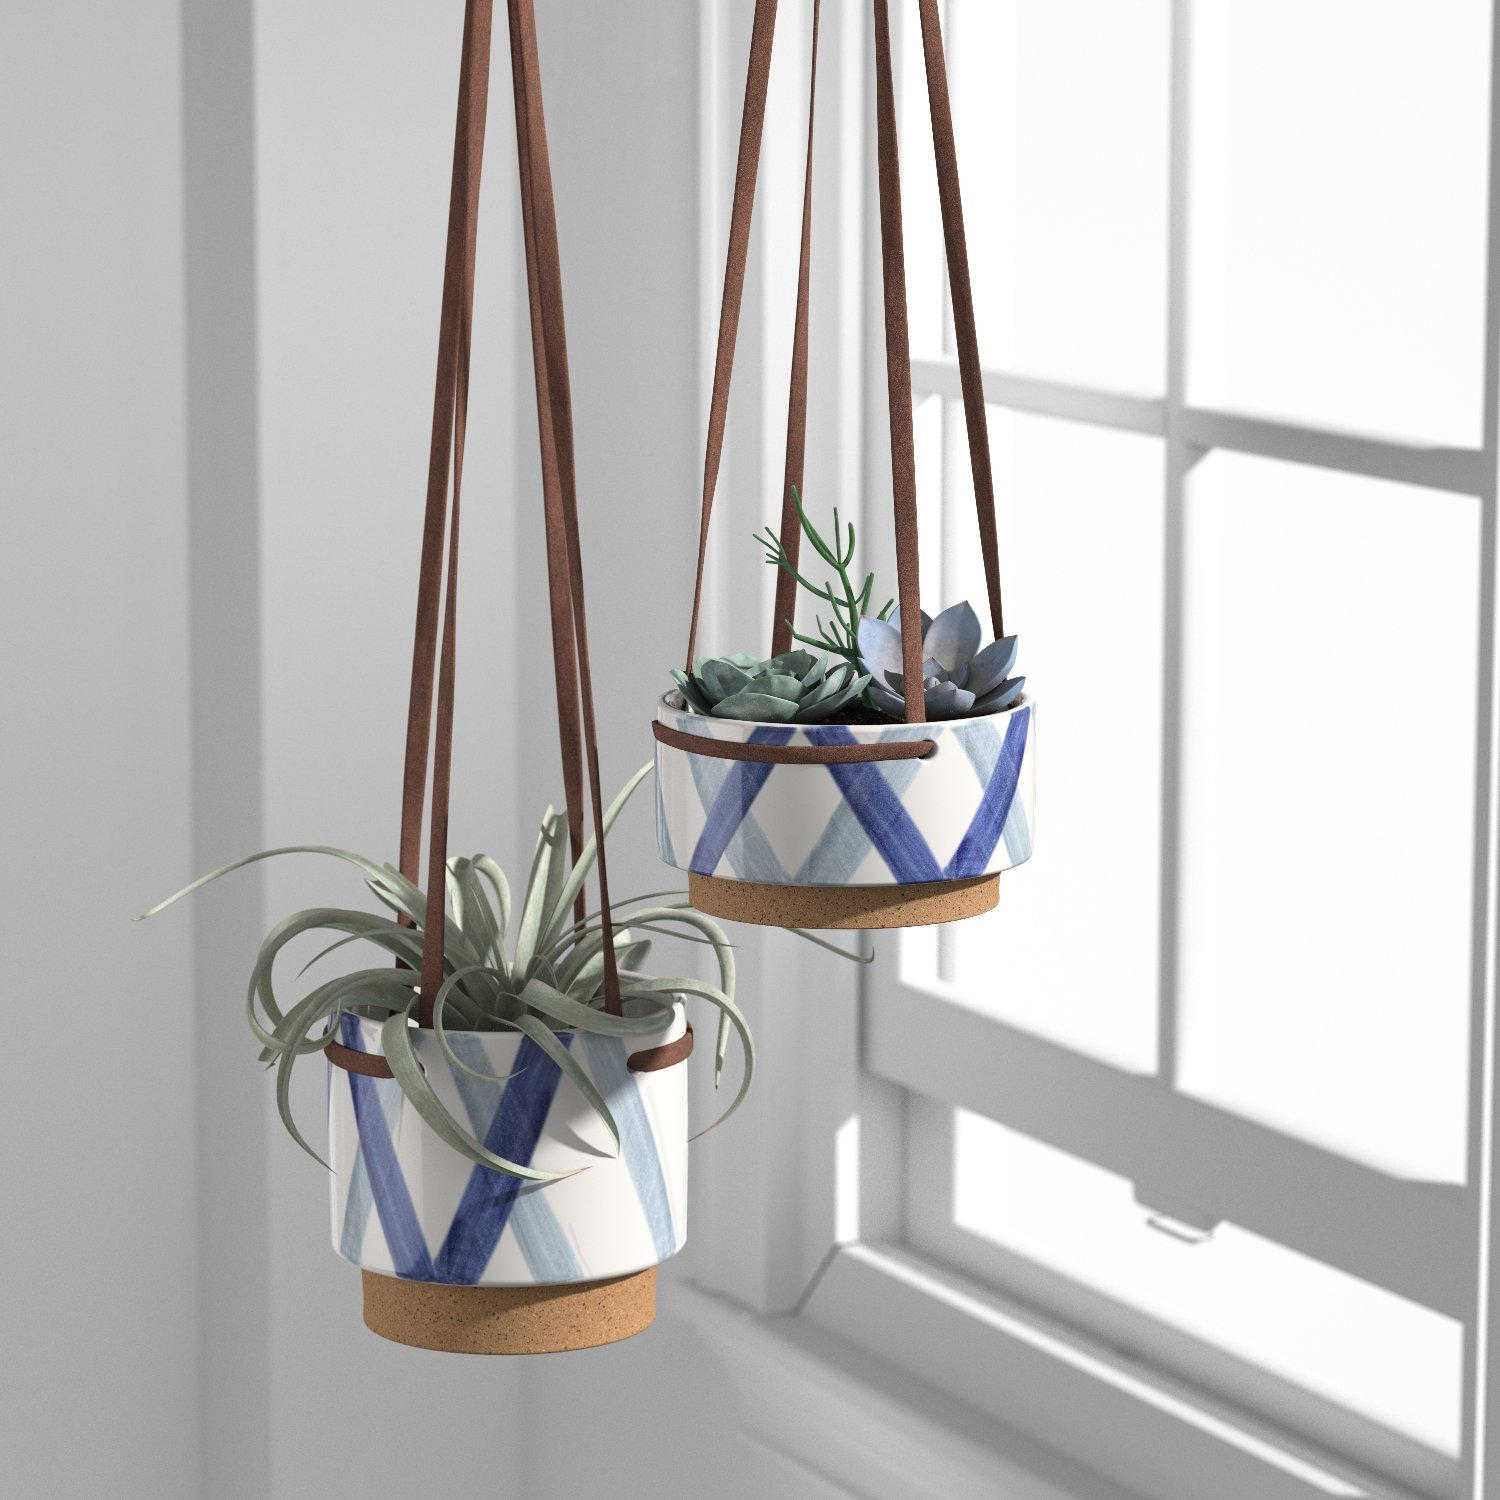 Rivet Modern Ceramic Planter with Leather Strap, 3.5″H, Blue and Ivory